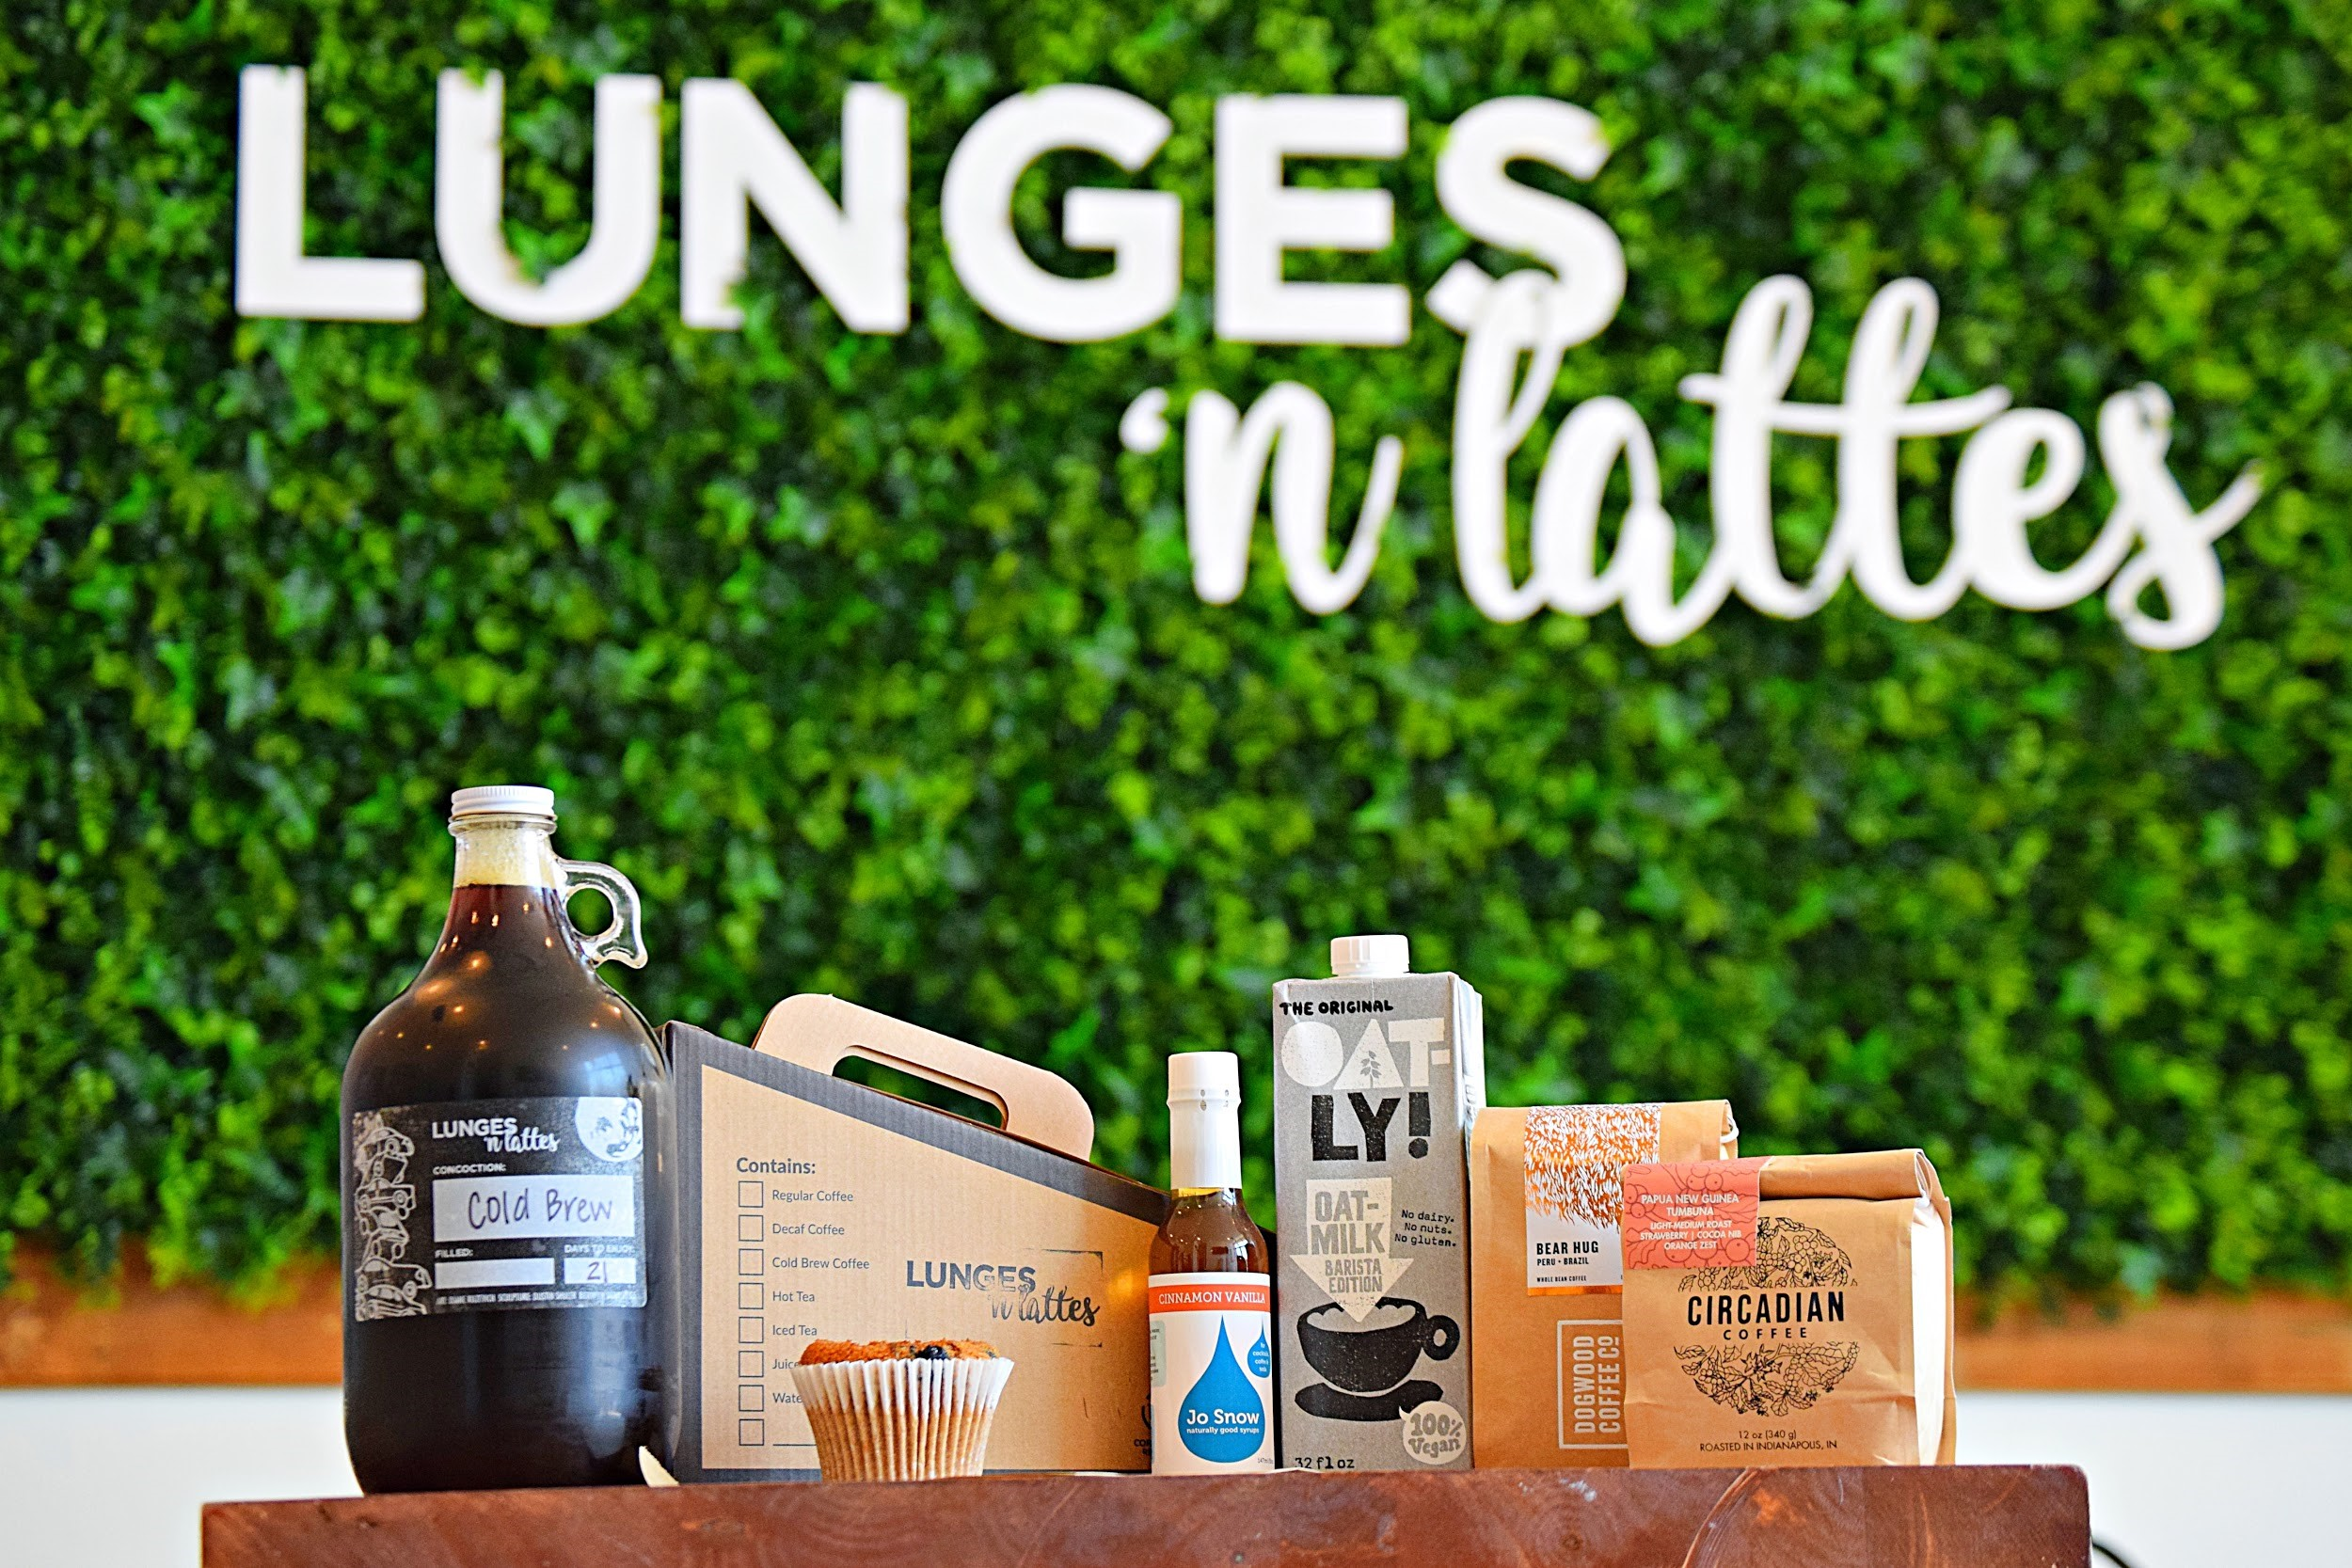 Lunges 'N Lattes: Breakfast At Your Doorstep